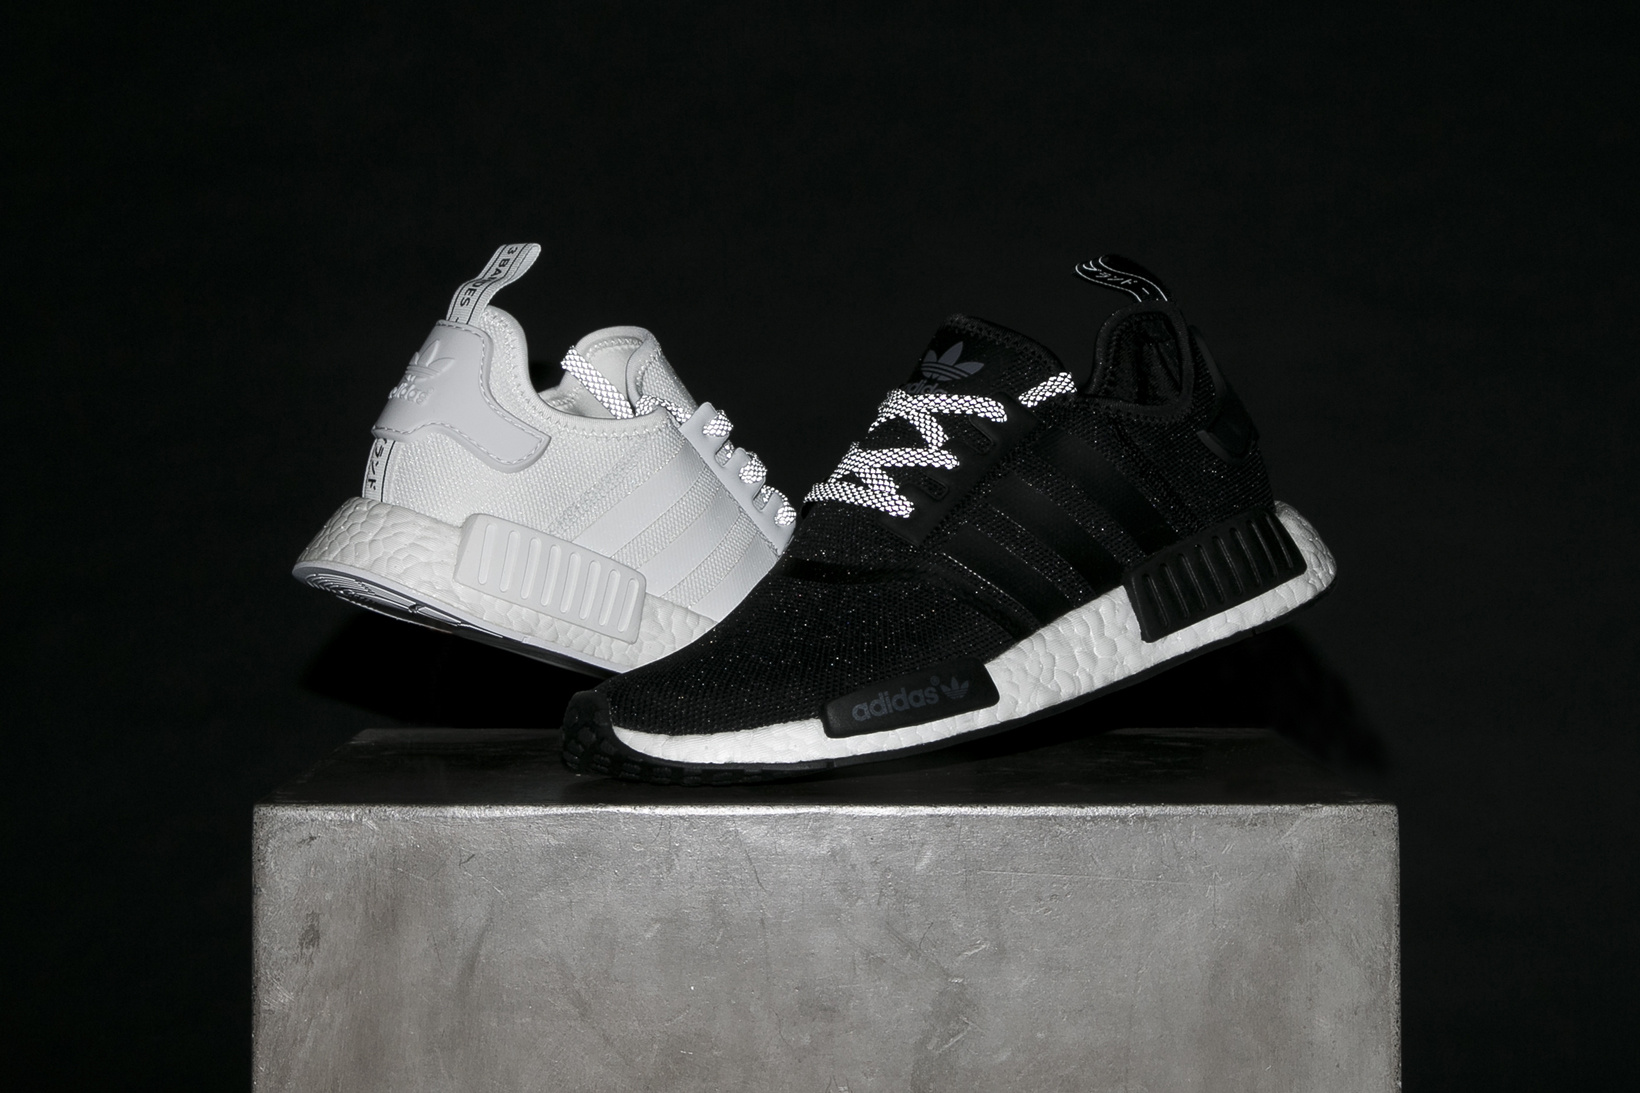 adidas-nmd-r1-core-black-white-reflective-2